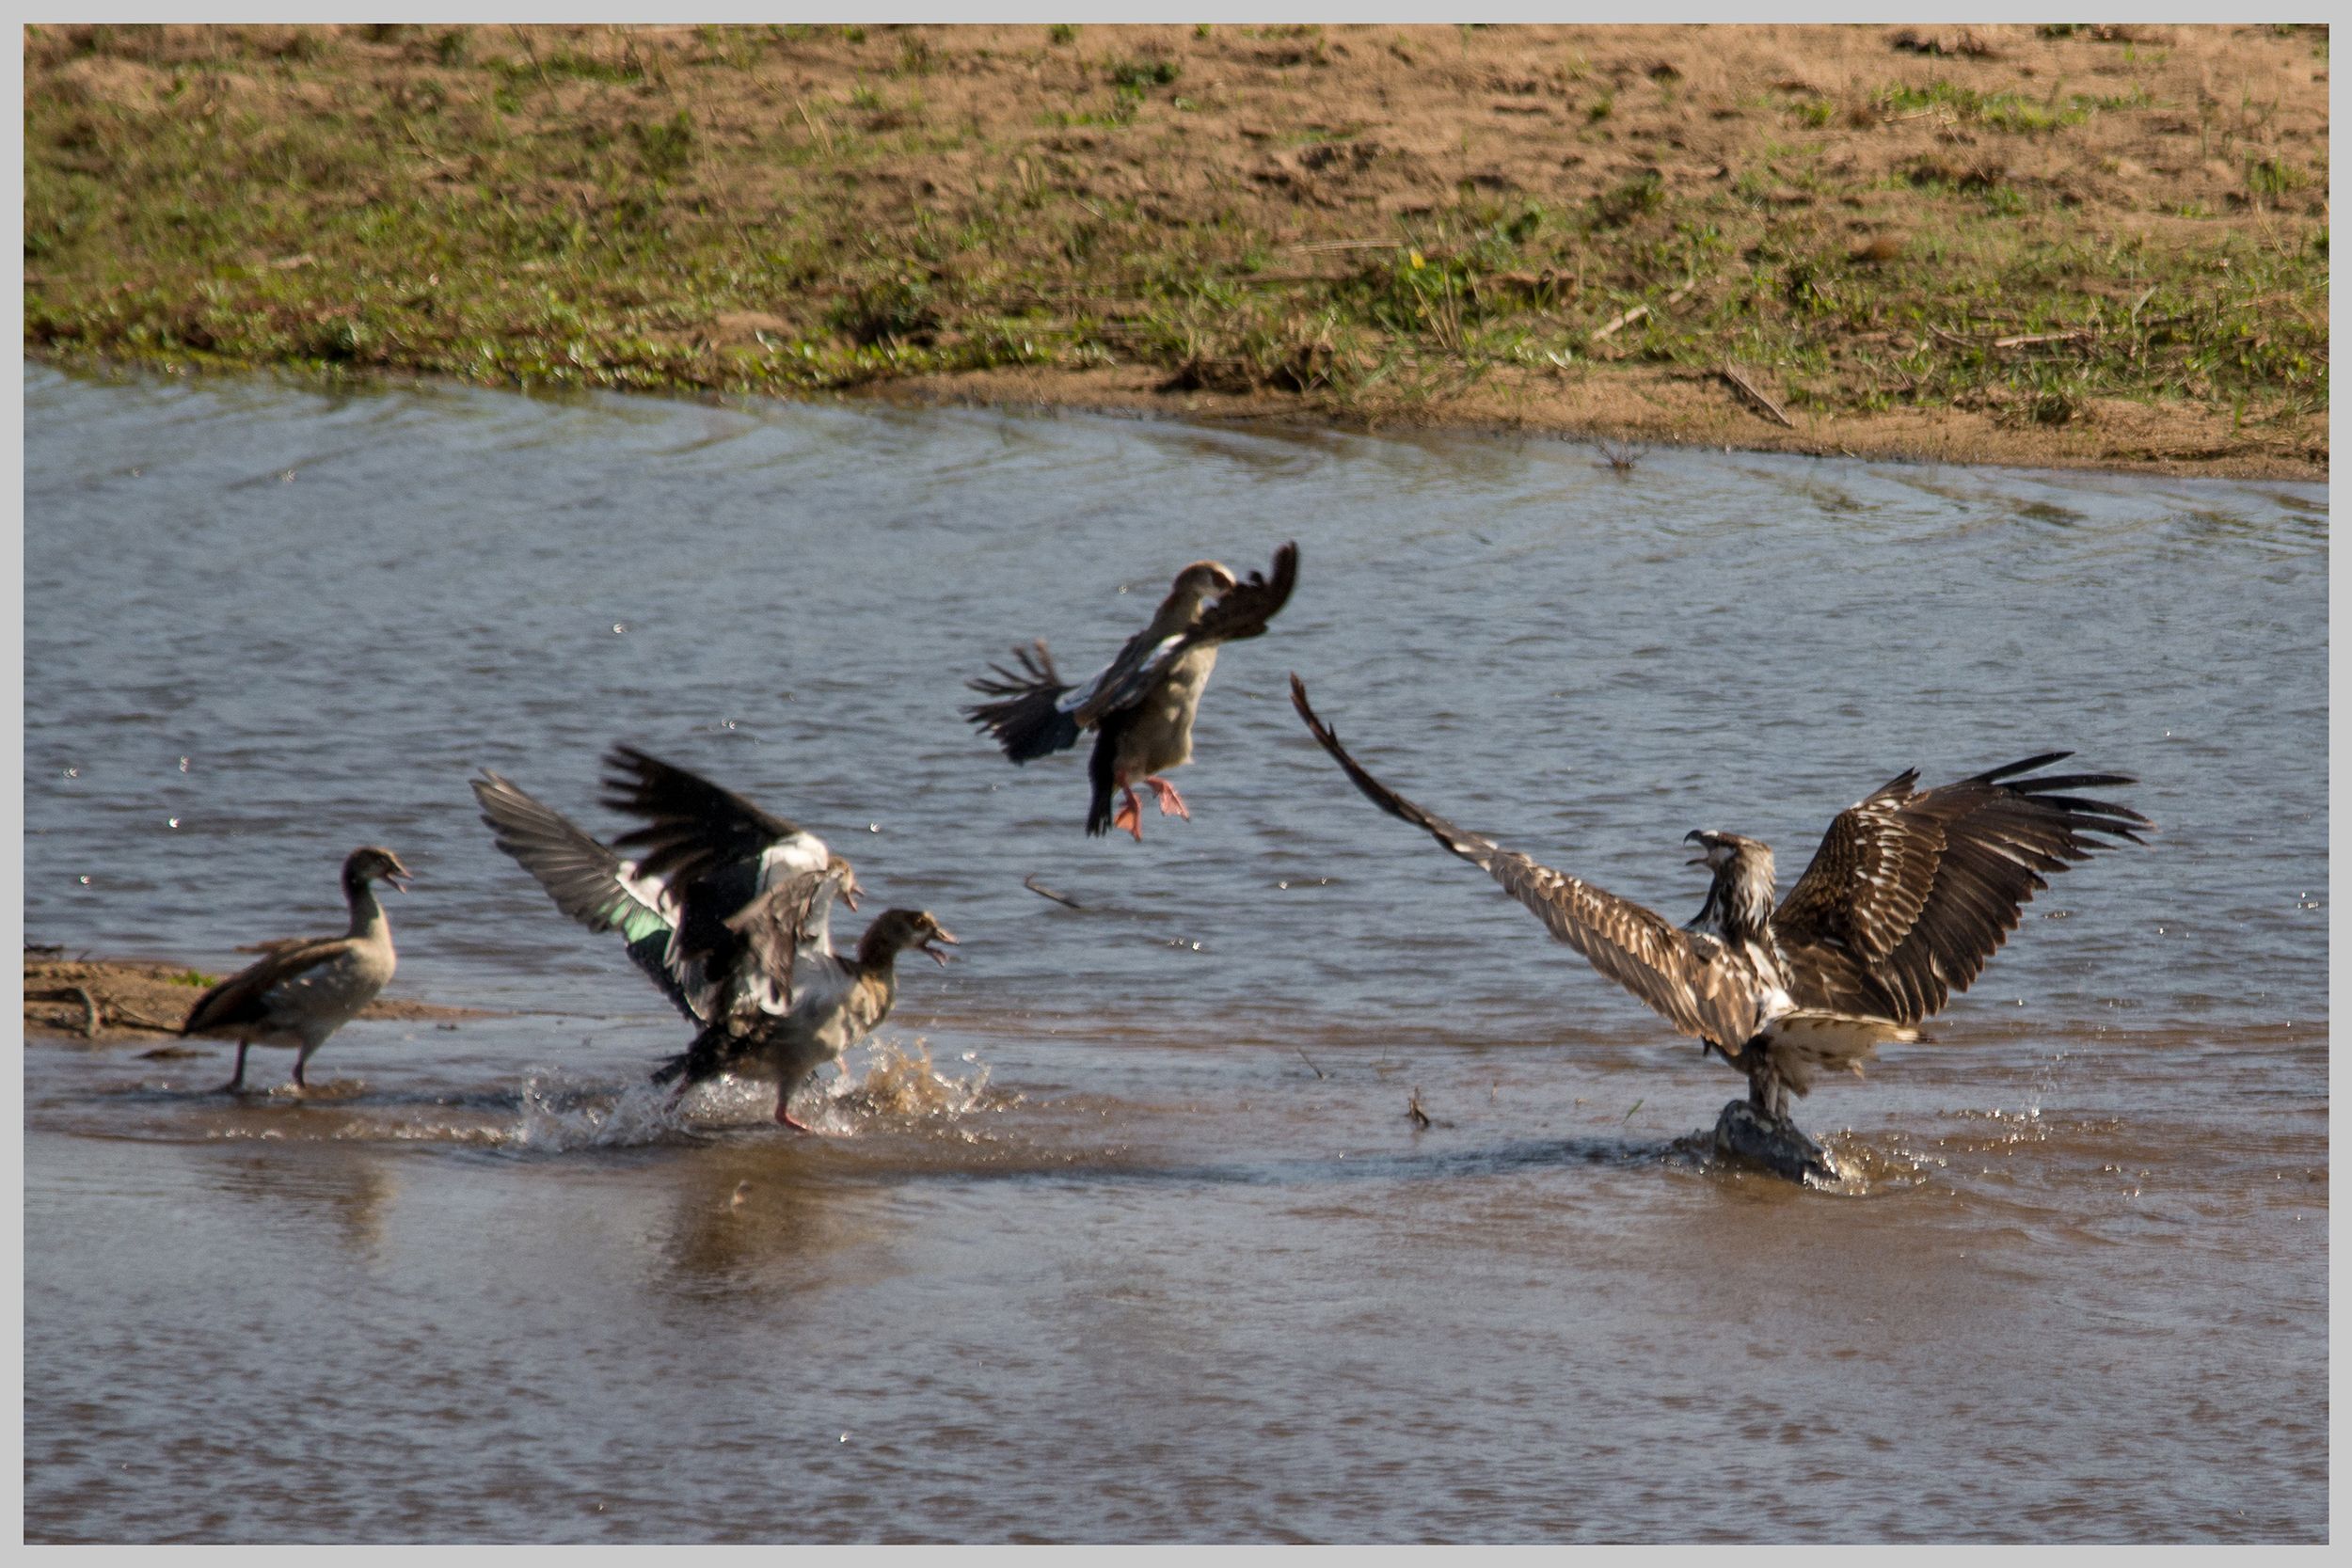 Juvenile African Fish Eagle protecting it's catch from Egyptian Geese